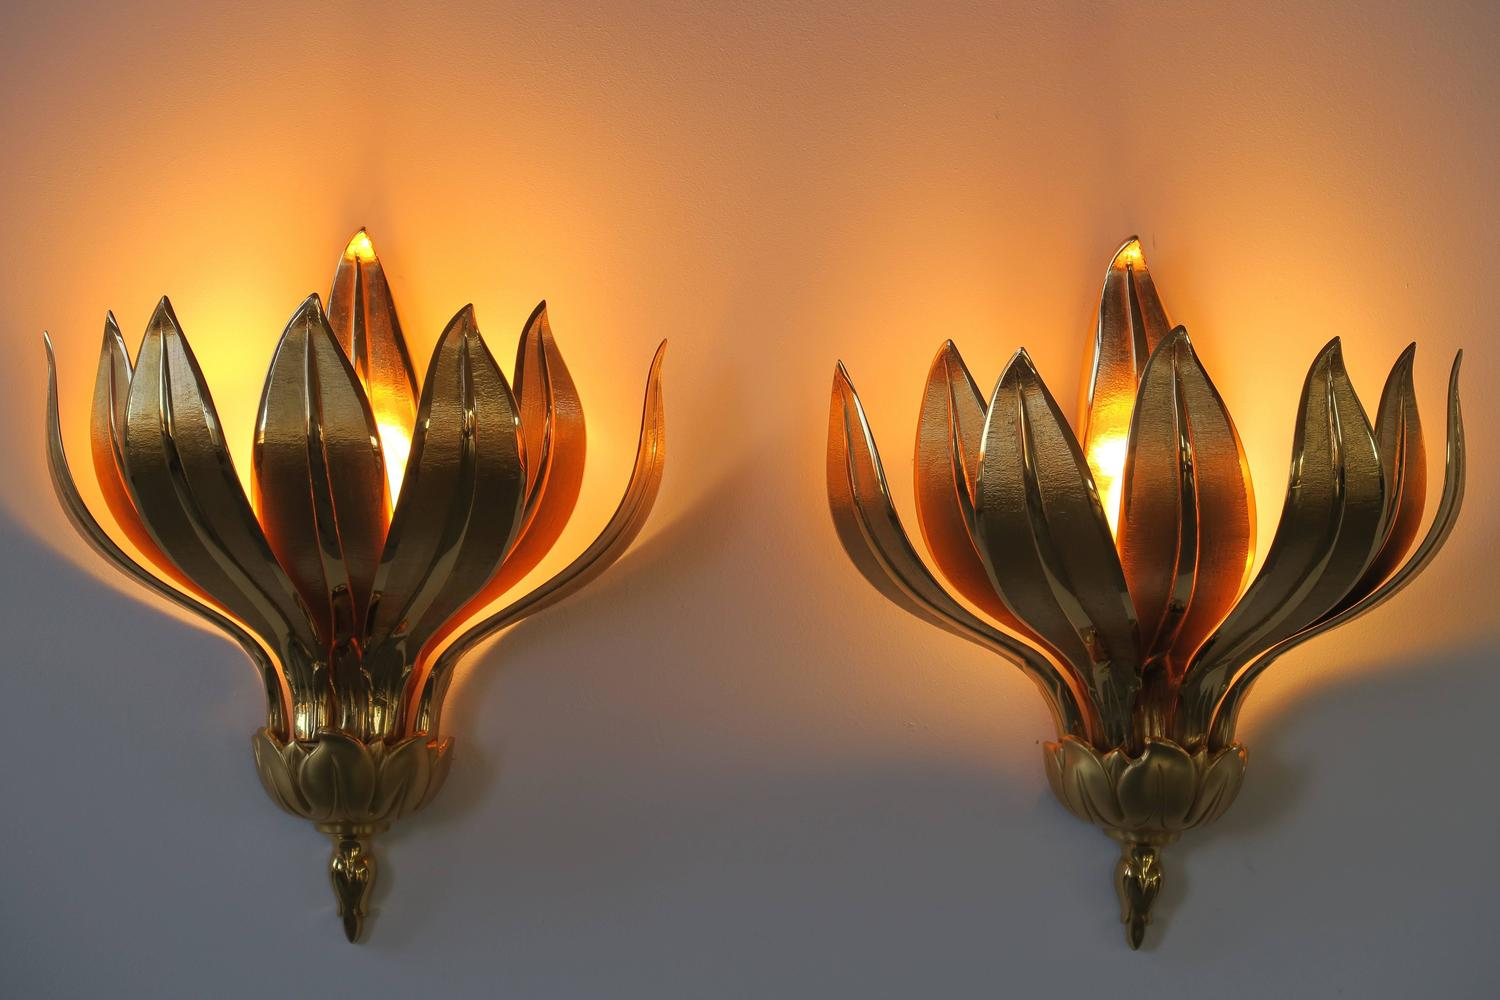 Pair of Wall Lamps, Ananas Bronze Wall Lamps Lumi, 1970 For Sale at 1stdibs